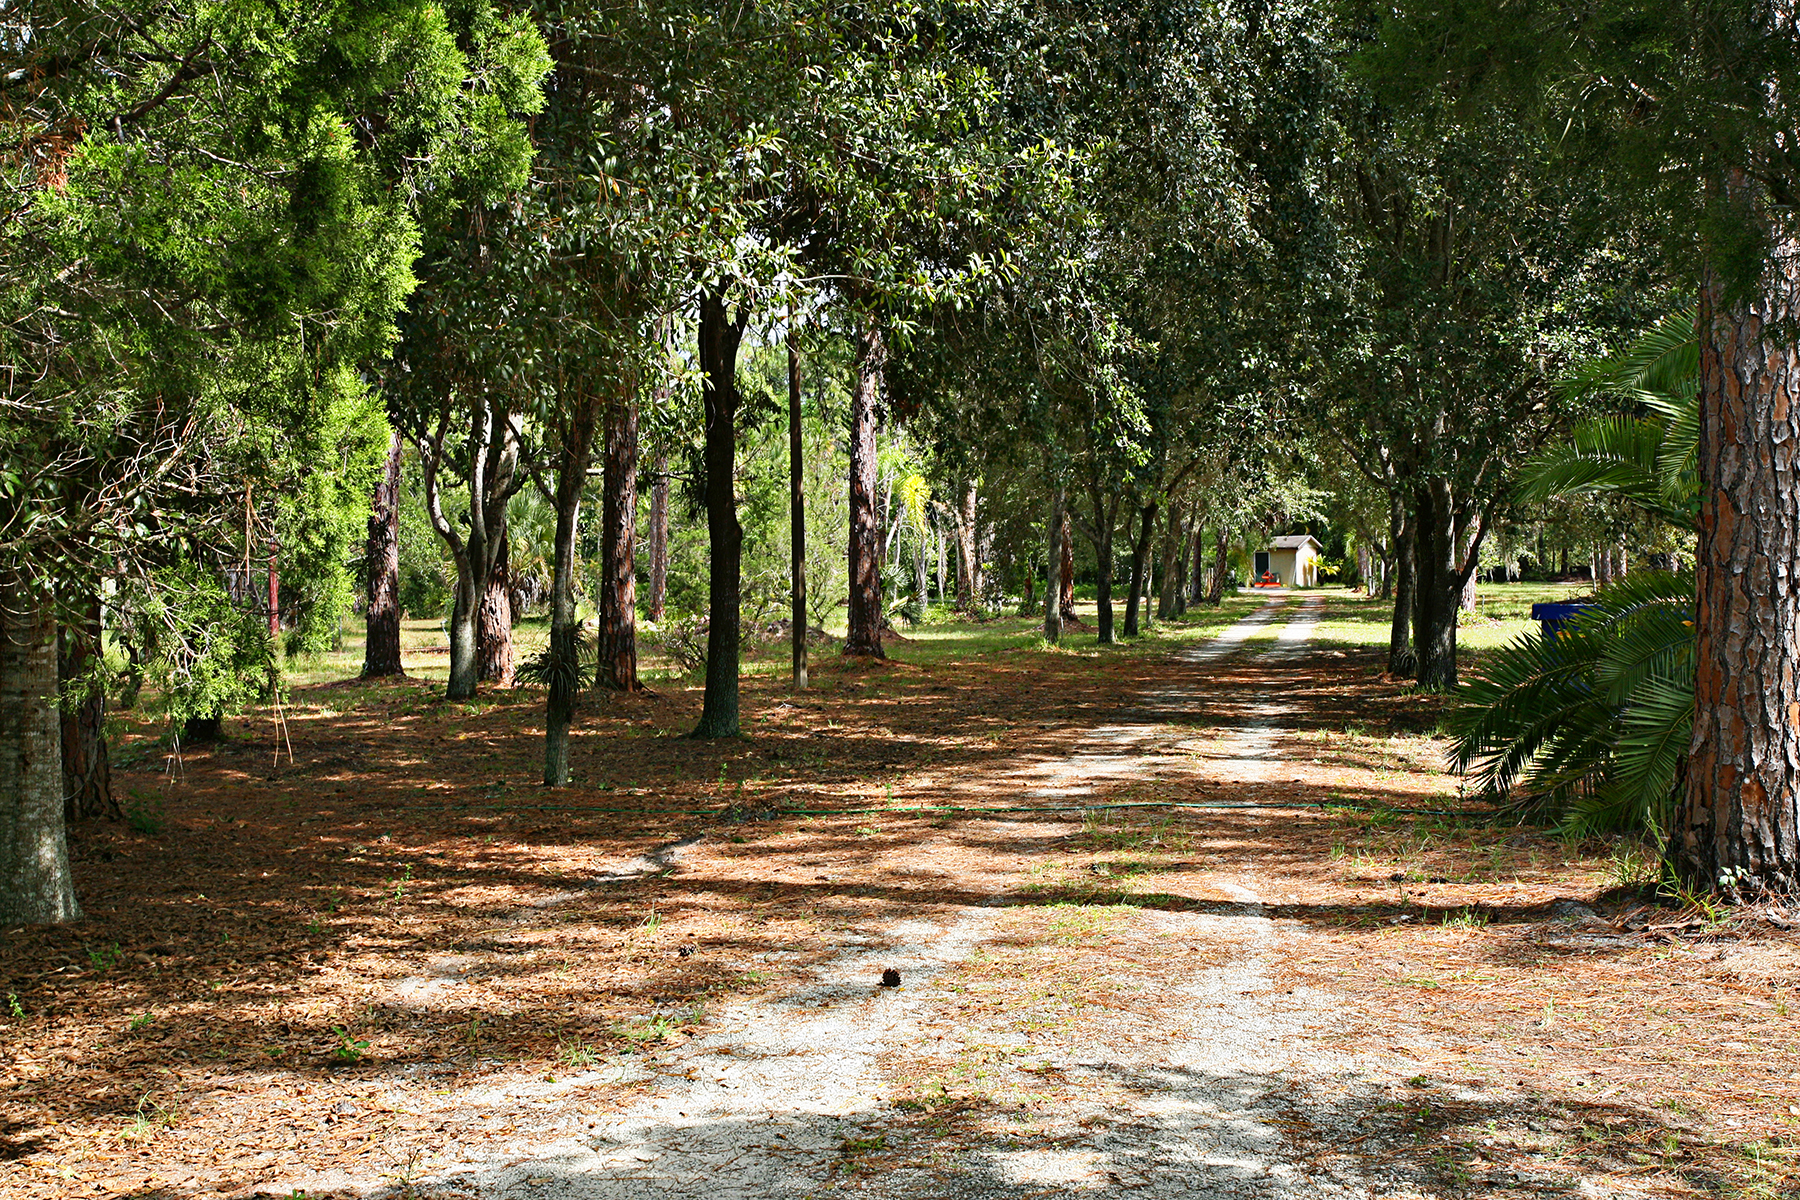 Land for Sale at NAPLES - SAN MARCOS BLVD 1275 San Marcos Blvd Naples, Florida 34104 United States